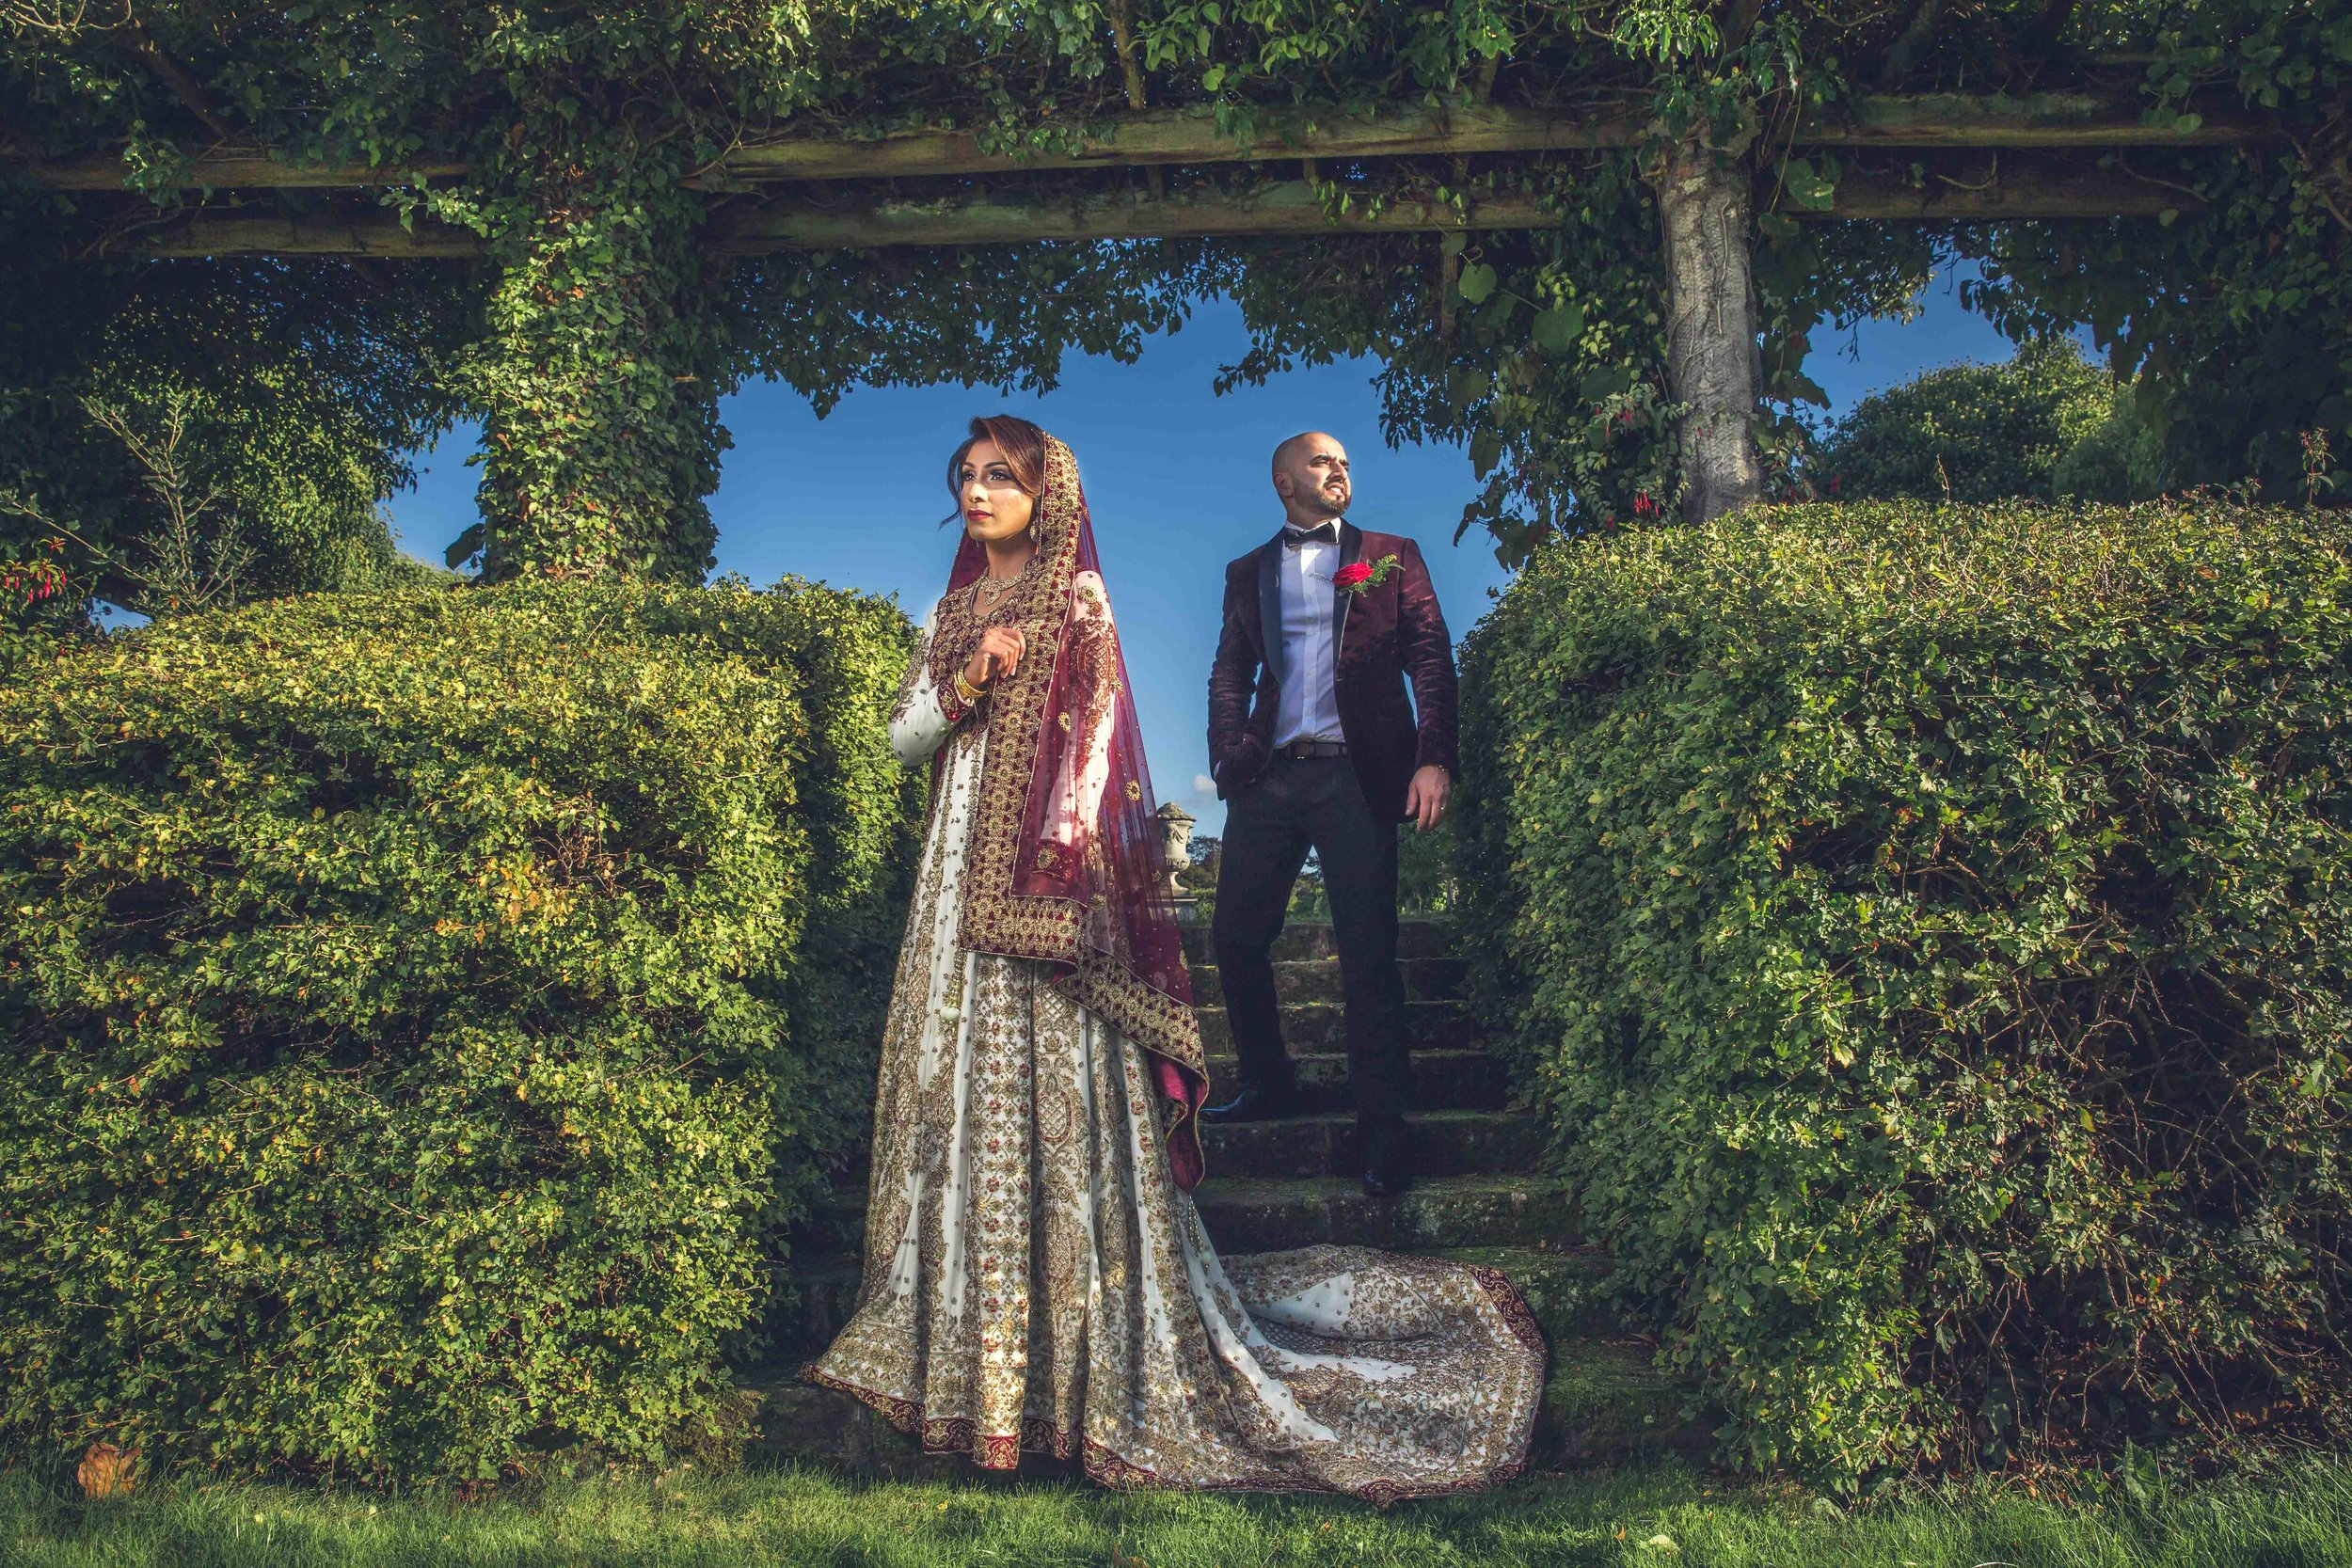 Asian Wedding Photographer Opu Sultan Photography Lyme Park Scotland Edinburgh Glasgow London Manchester Liverpool Birmingham Wedding Photos prewed shoot Azman & Saira Blog-91.jpg